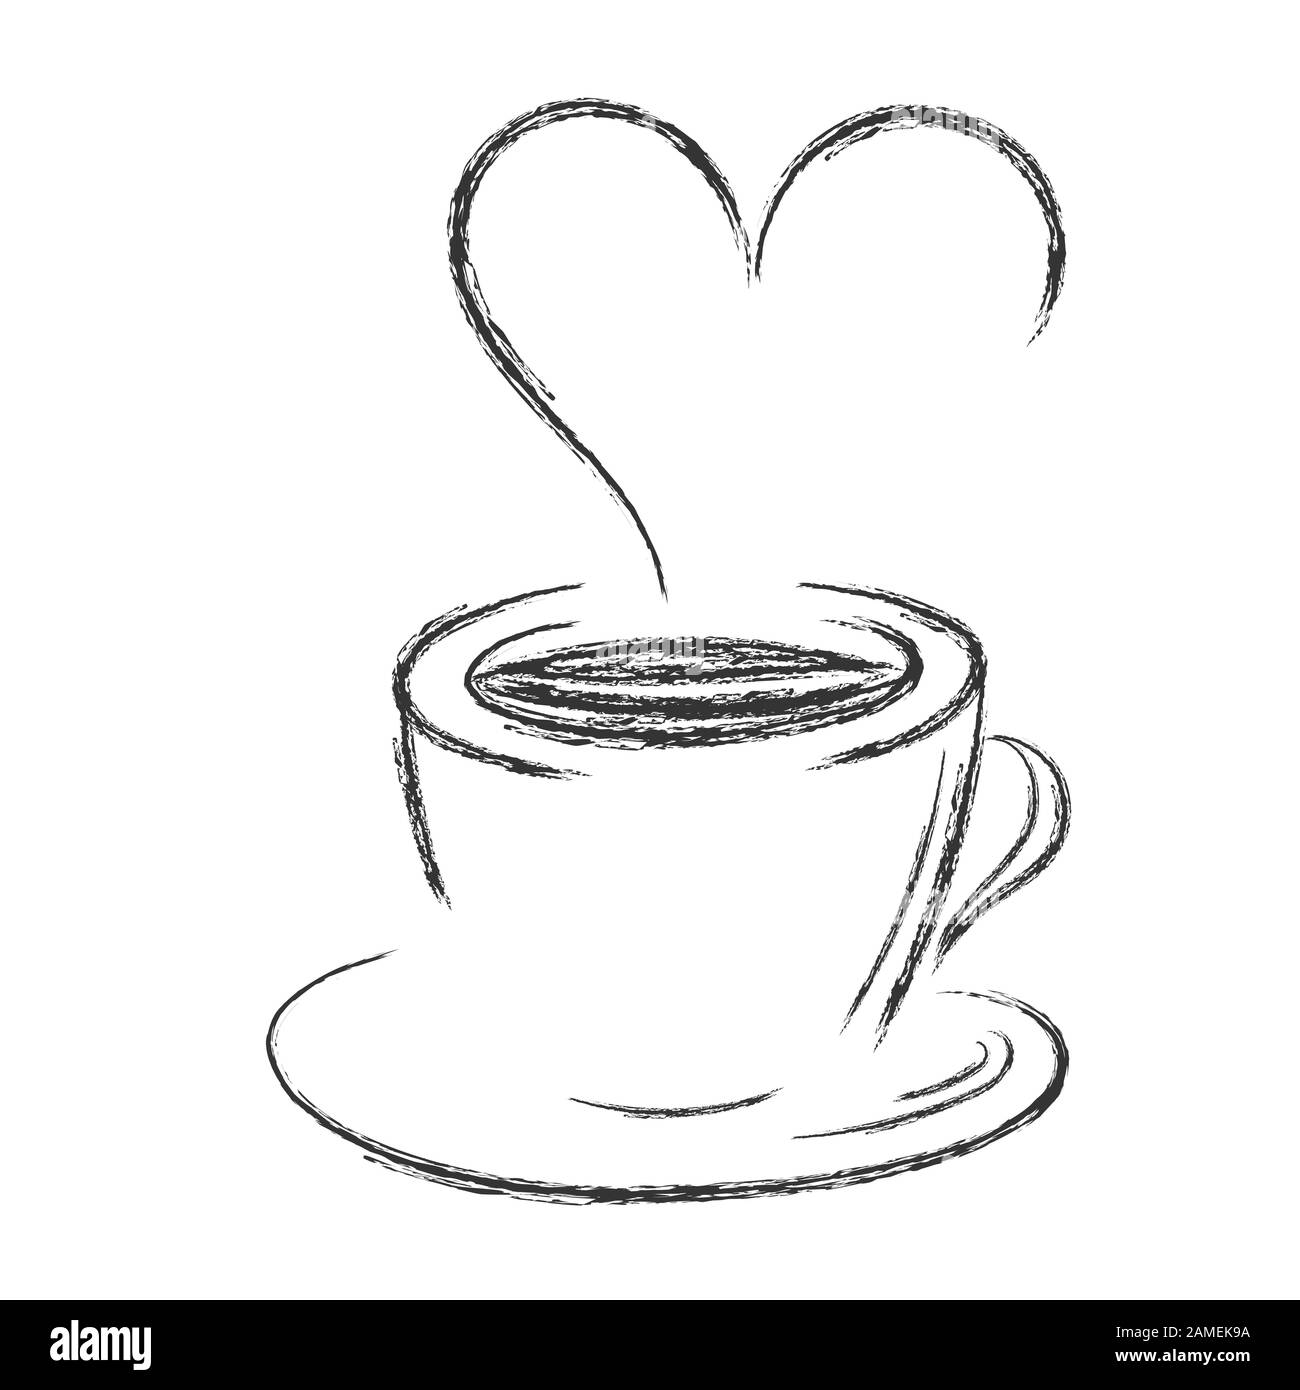 Vector Pencil Drawing Of A Cup Of Coffee Or Tea With Steam In The Form Of A Heart Isolated On White Background For Cafe Theme Design Menu Stock Vector Image Art